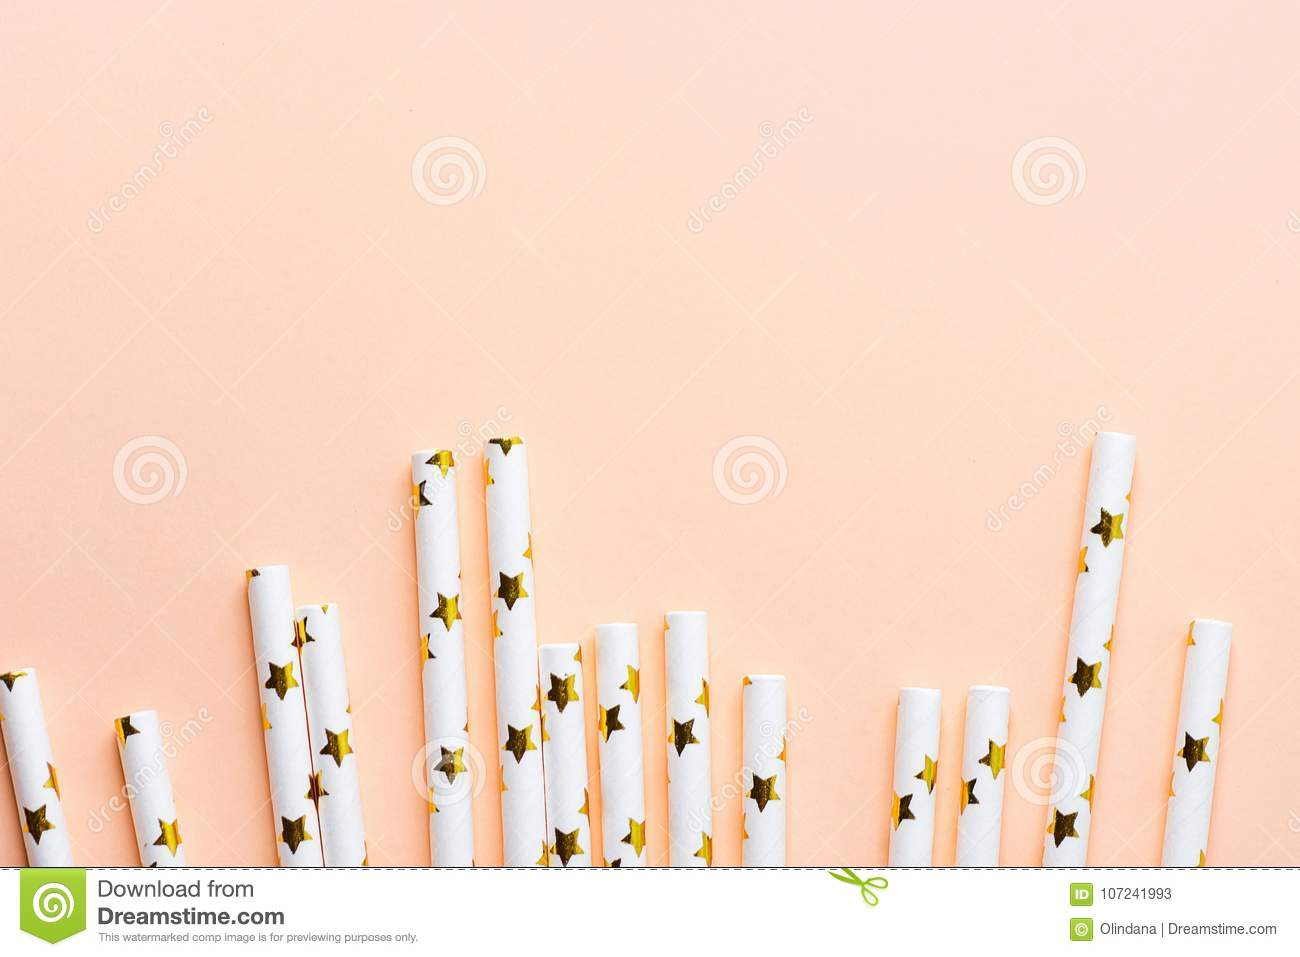 Elegant White Paper Drinking Straws with Golden Stars Pattern Scattered as Border Frame on Pink Peachy Background. Birthday Party